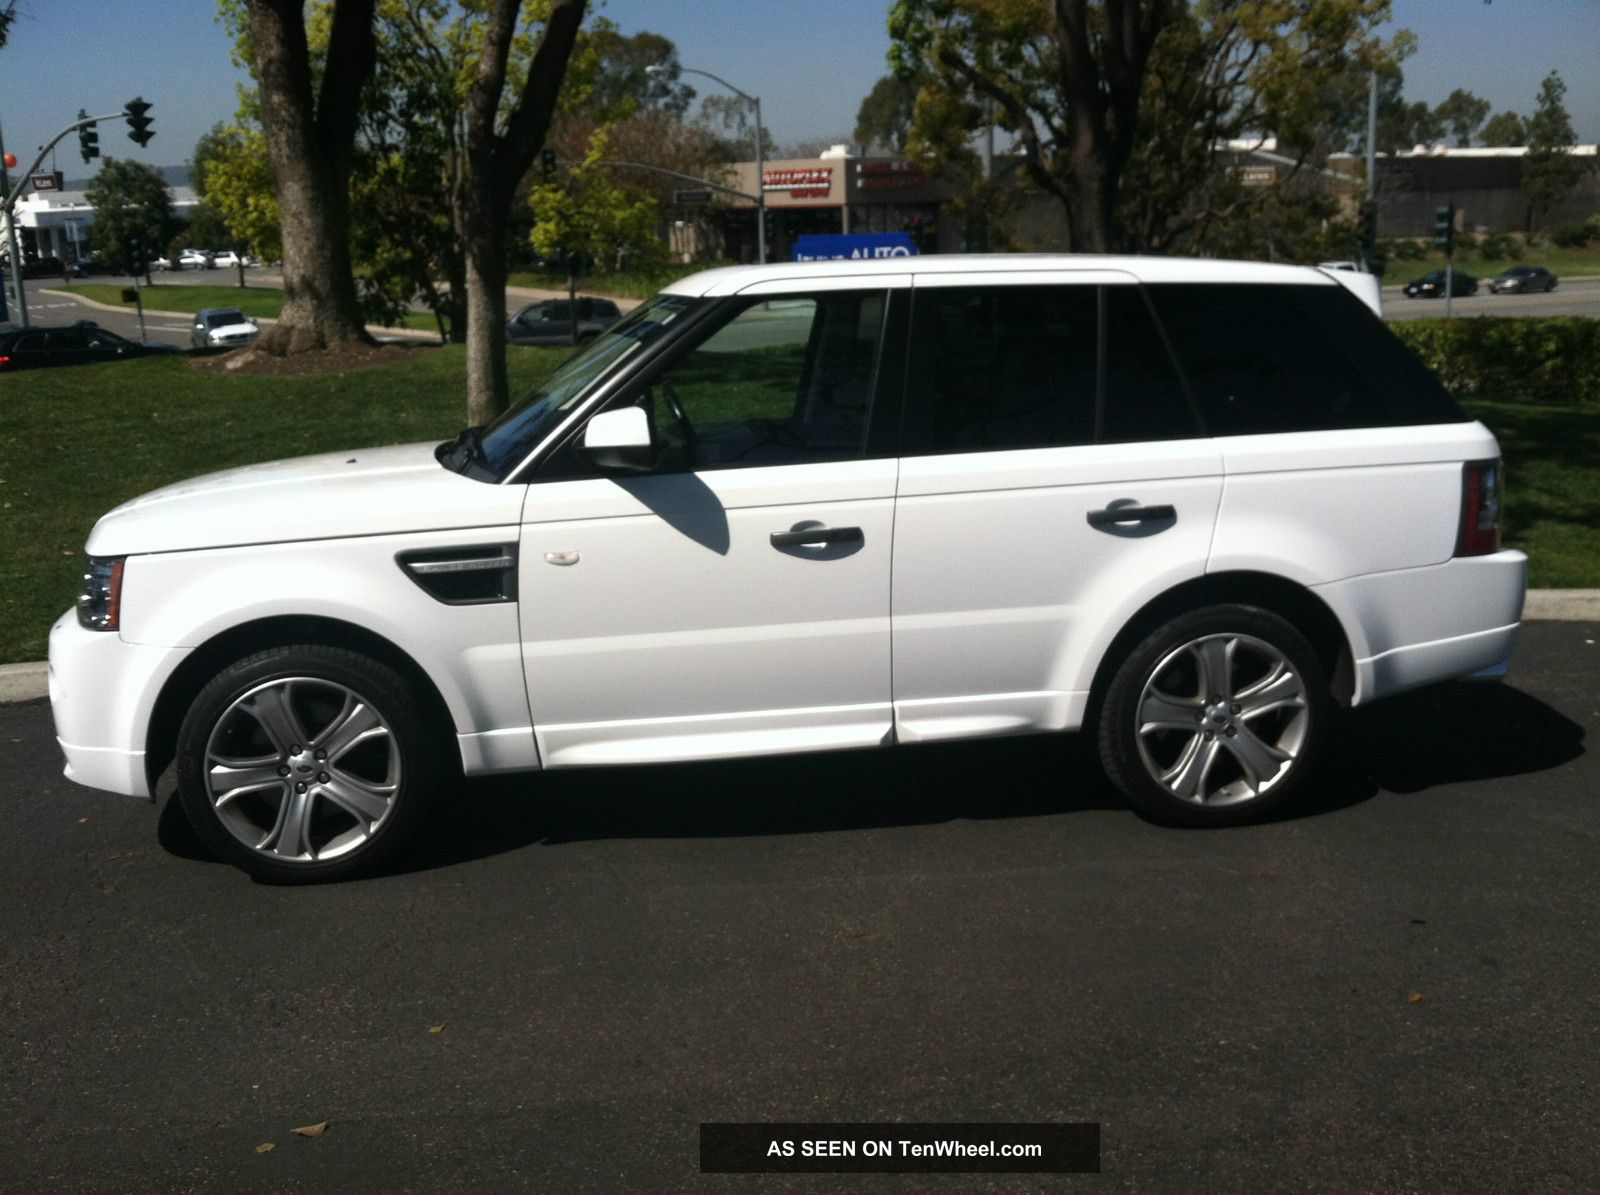 2011 range rover sport gt limited edition 33k fuji white full. Black Bedroom Furniture Sets. Home Design Ideas